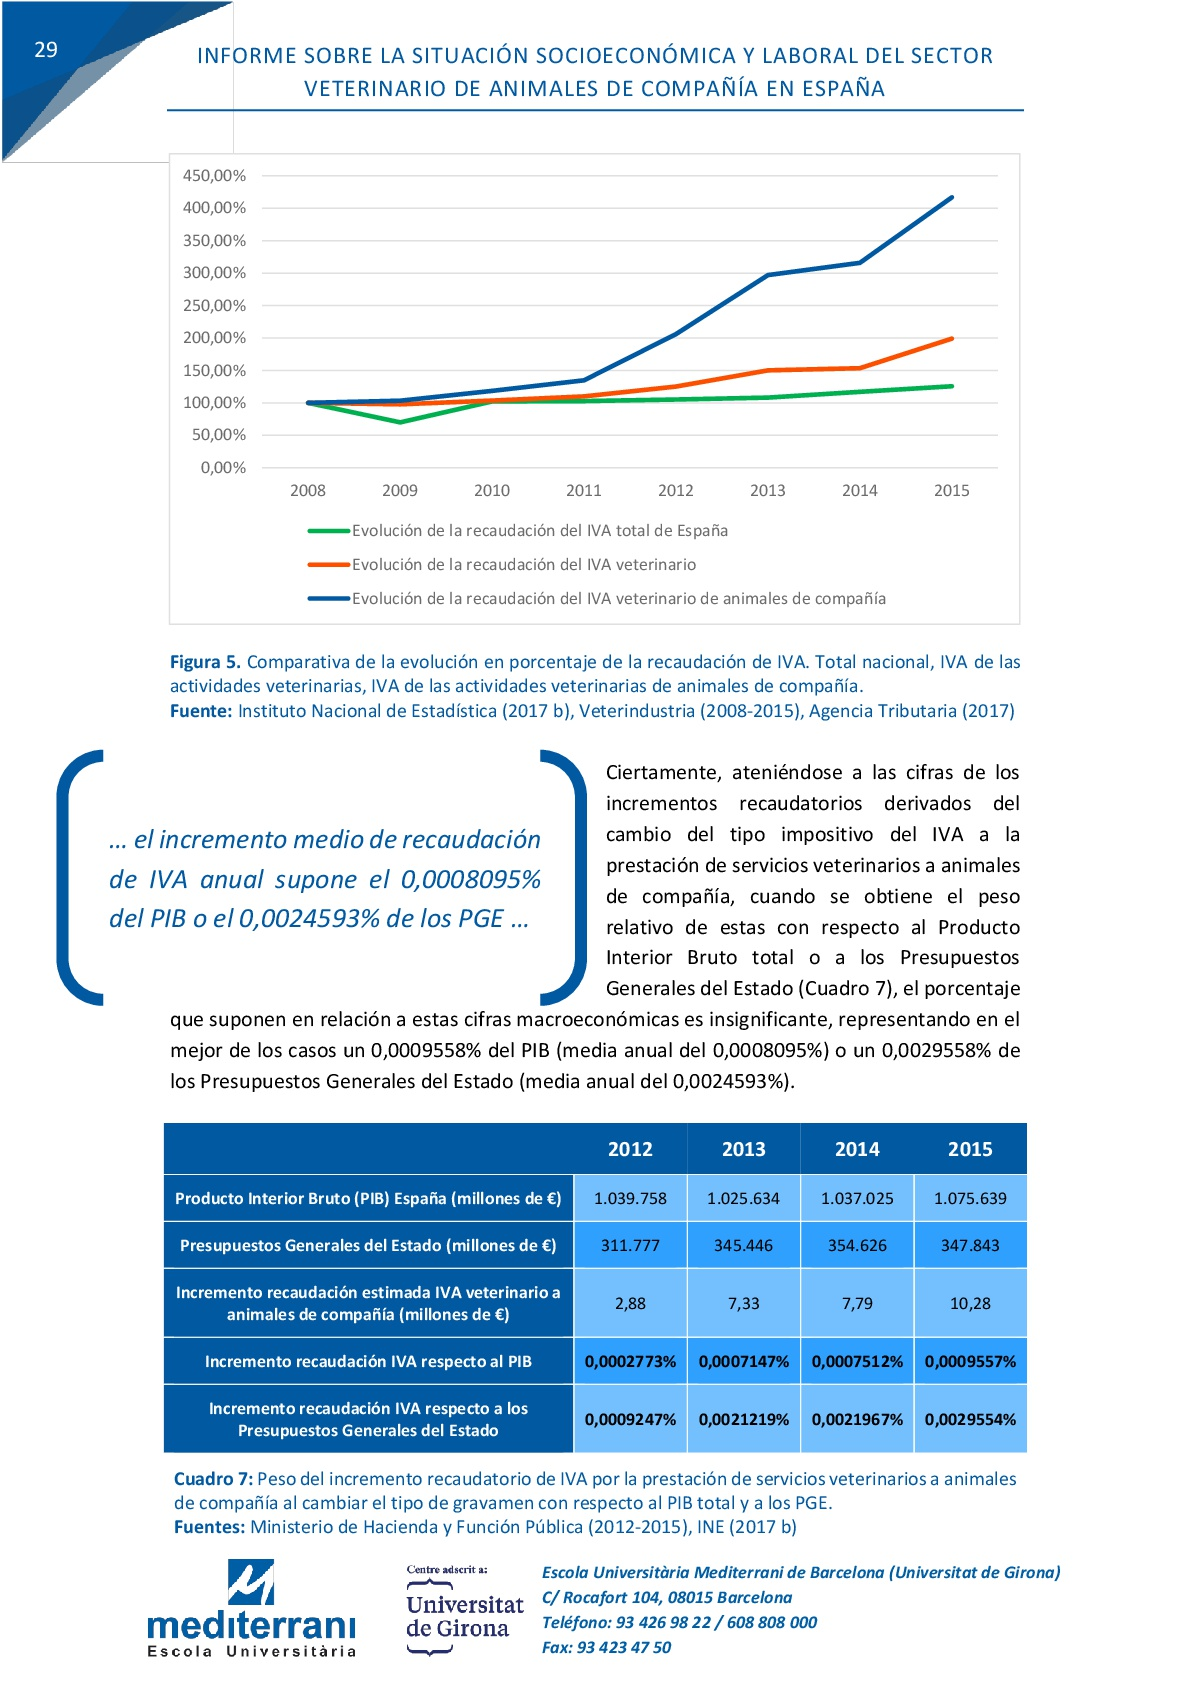 Informe-Veterinario-2017-+-informe-legal-2015-(3)-034